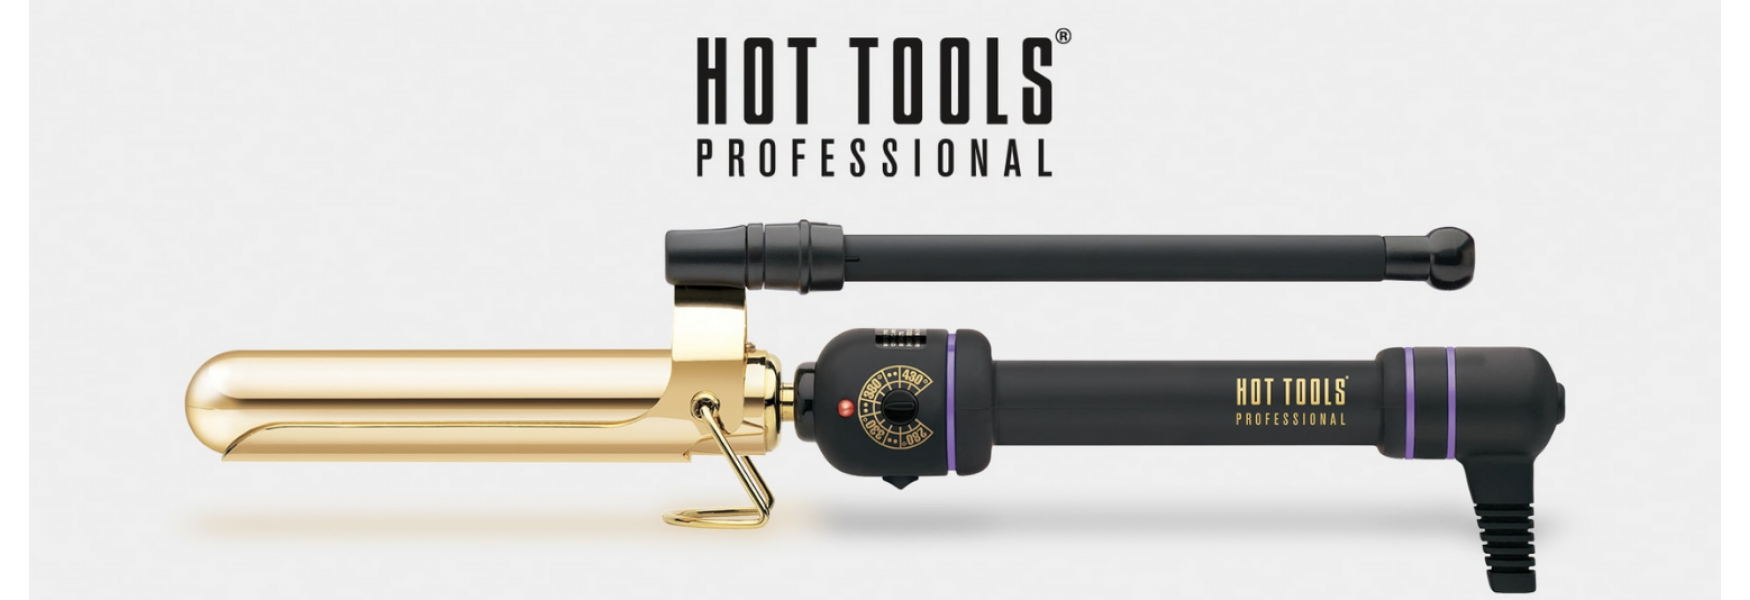 Hot Tools Webpage Banner #1